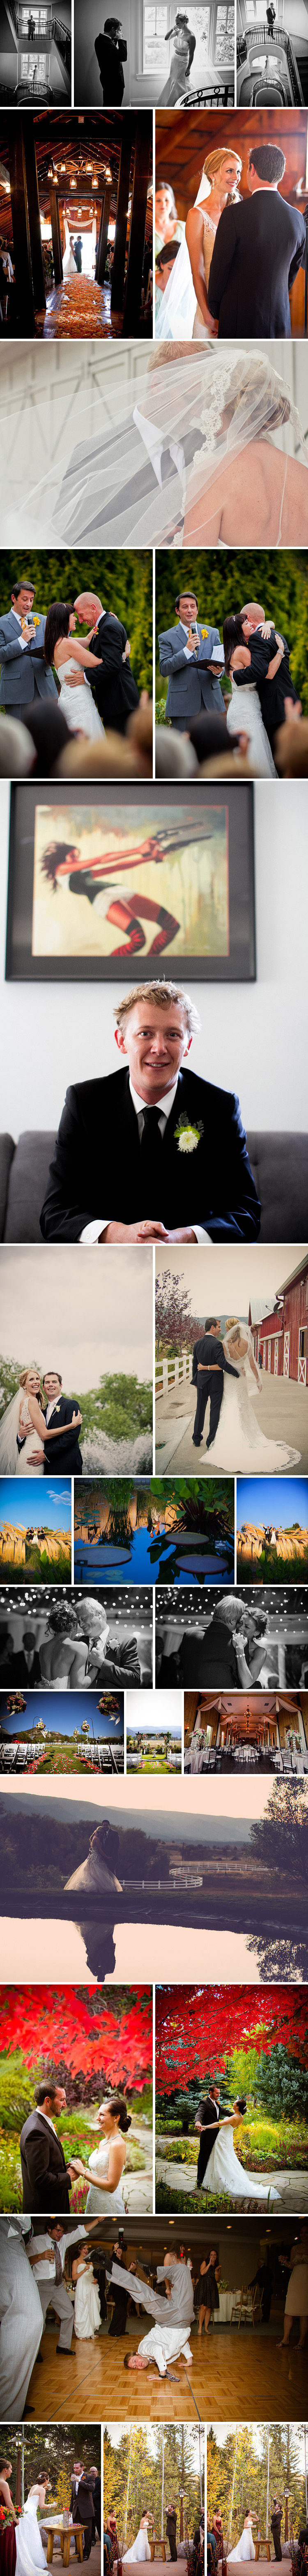 denver-weddings-2012-colorado-wedding-photography-4